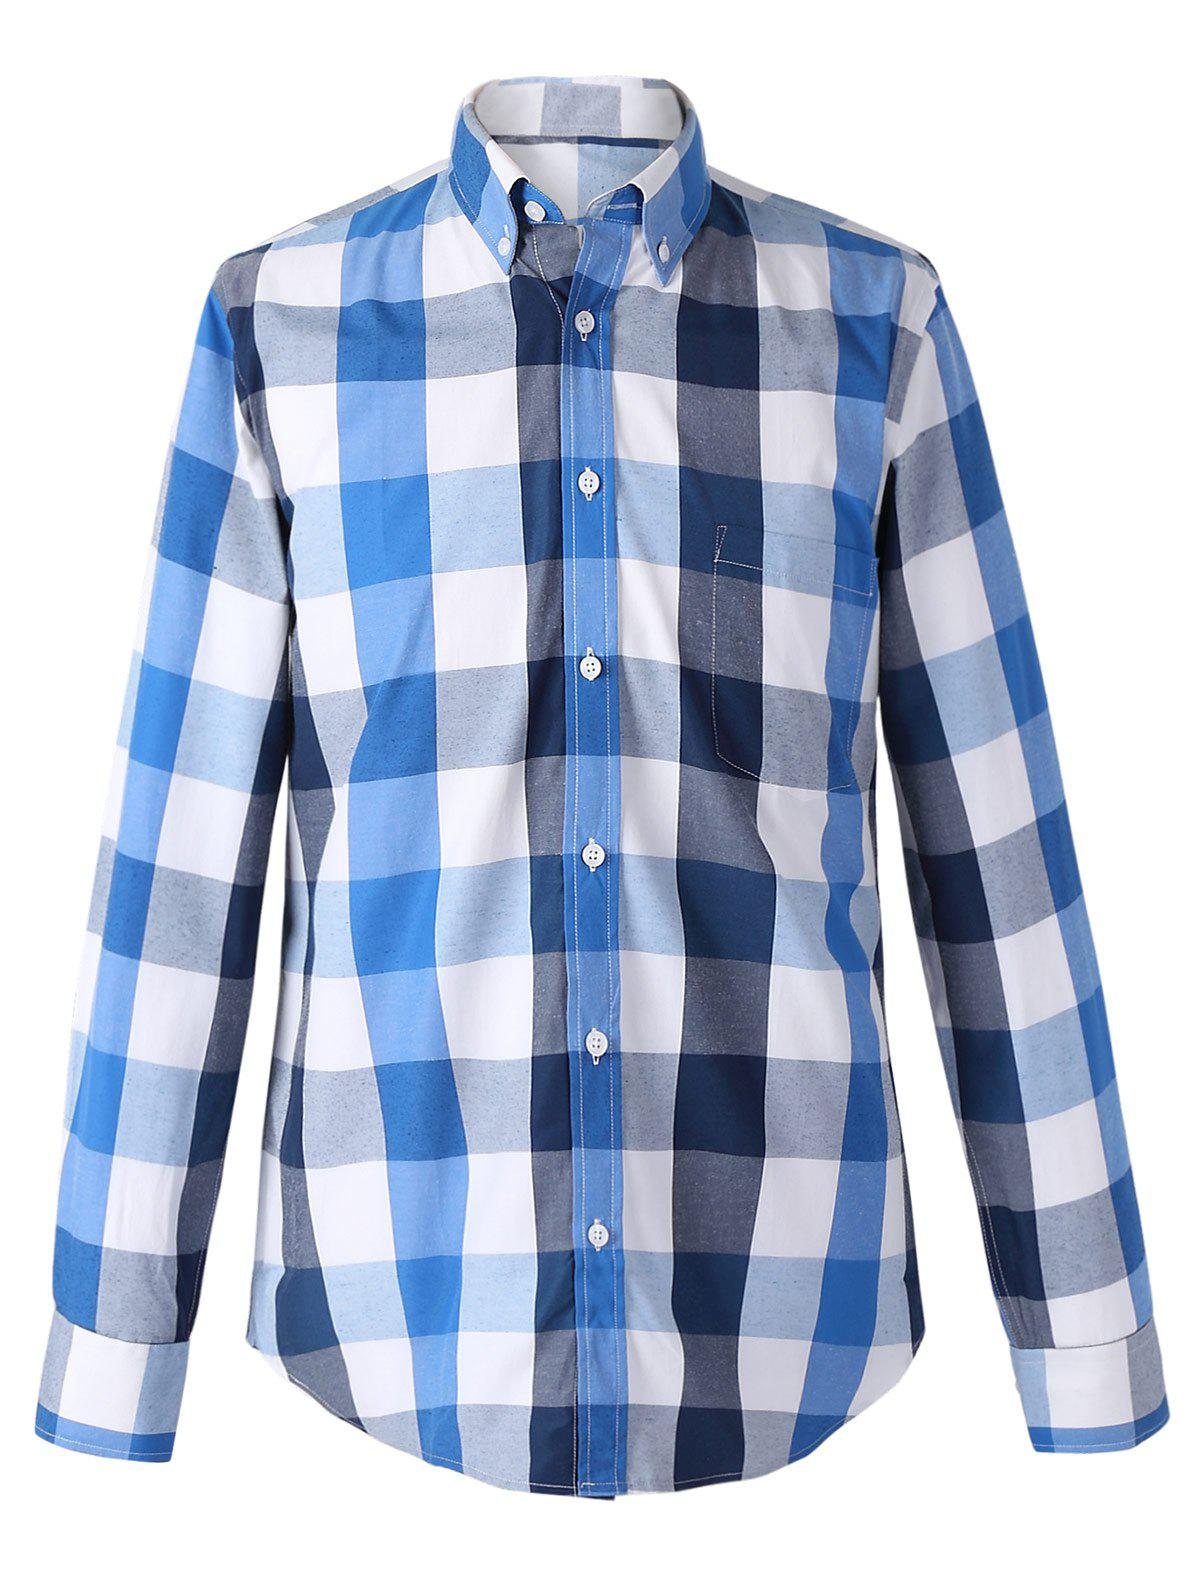 Turn-Down Collar Long Sleeve Classic Plaid Shirt For Men - BLUE 2XL